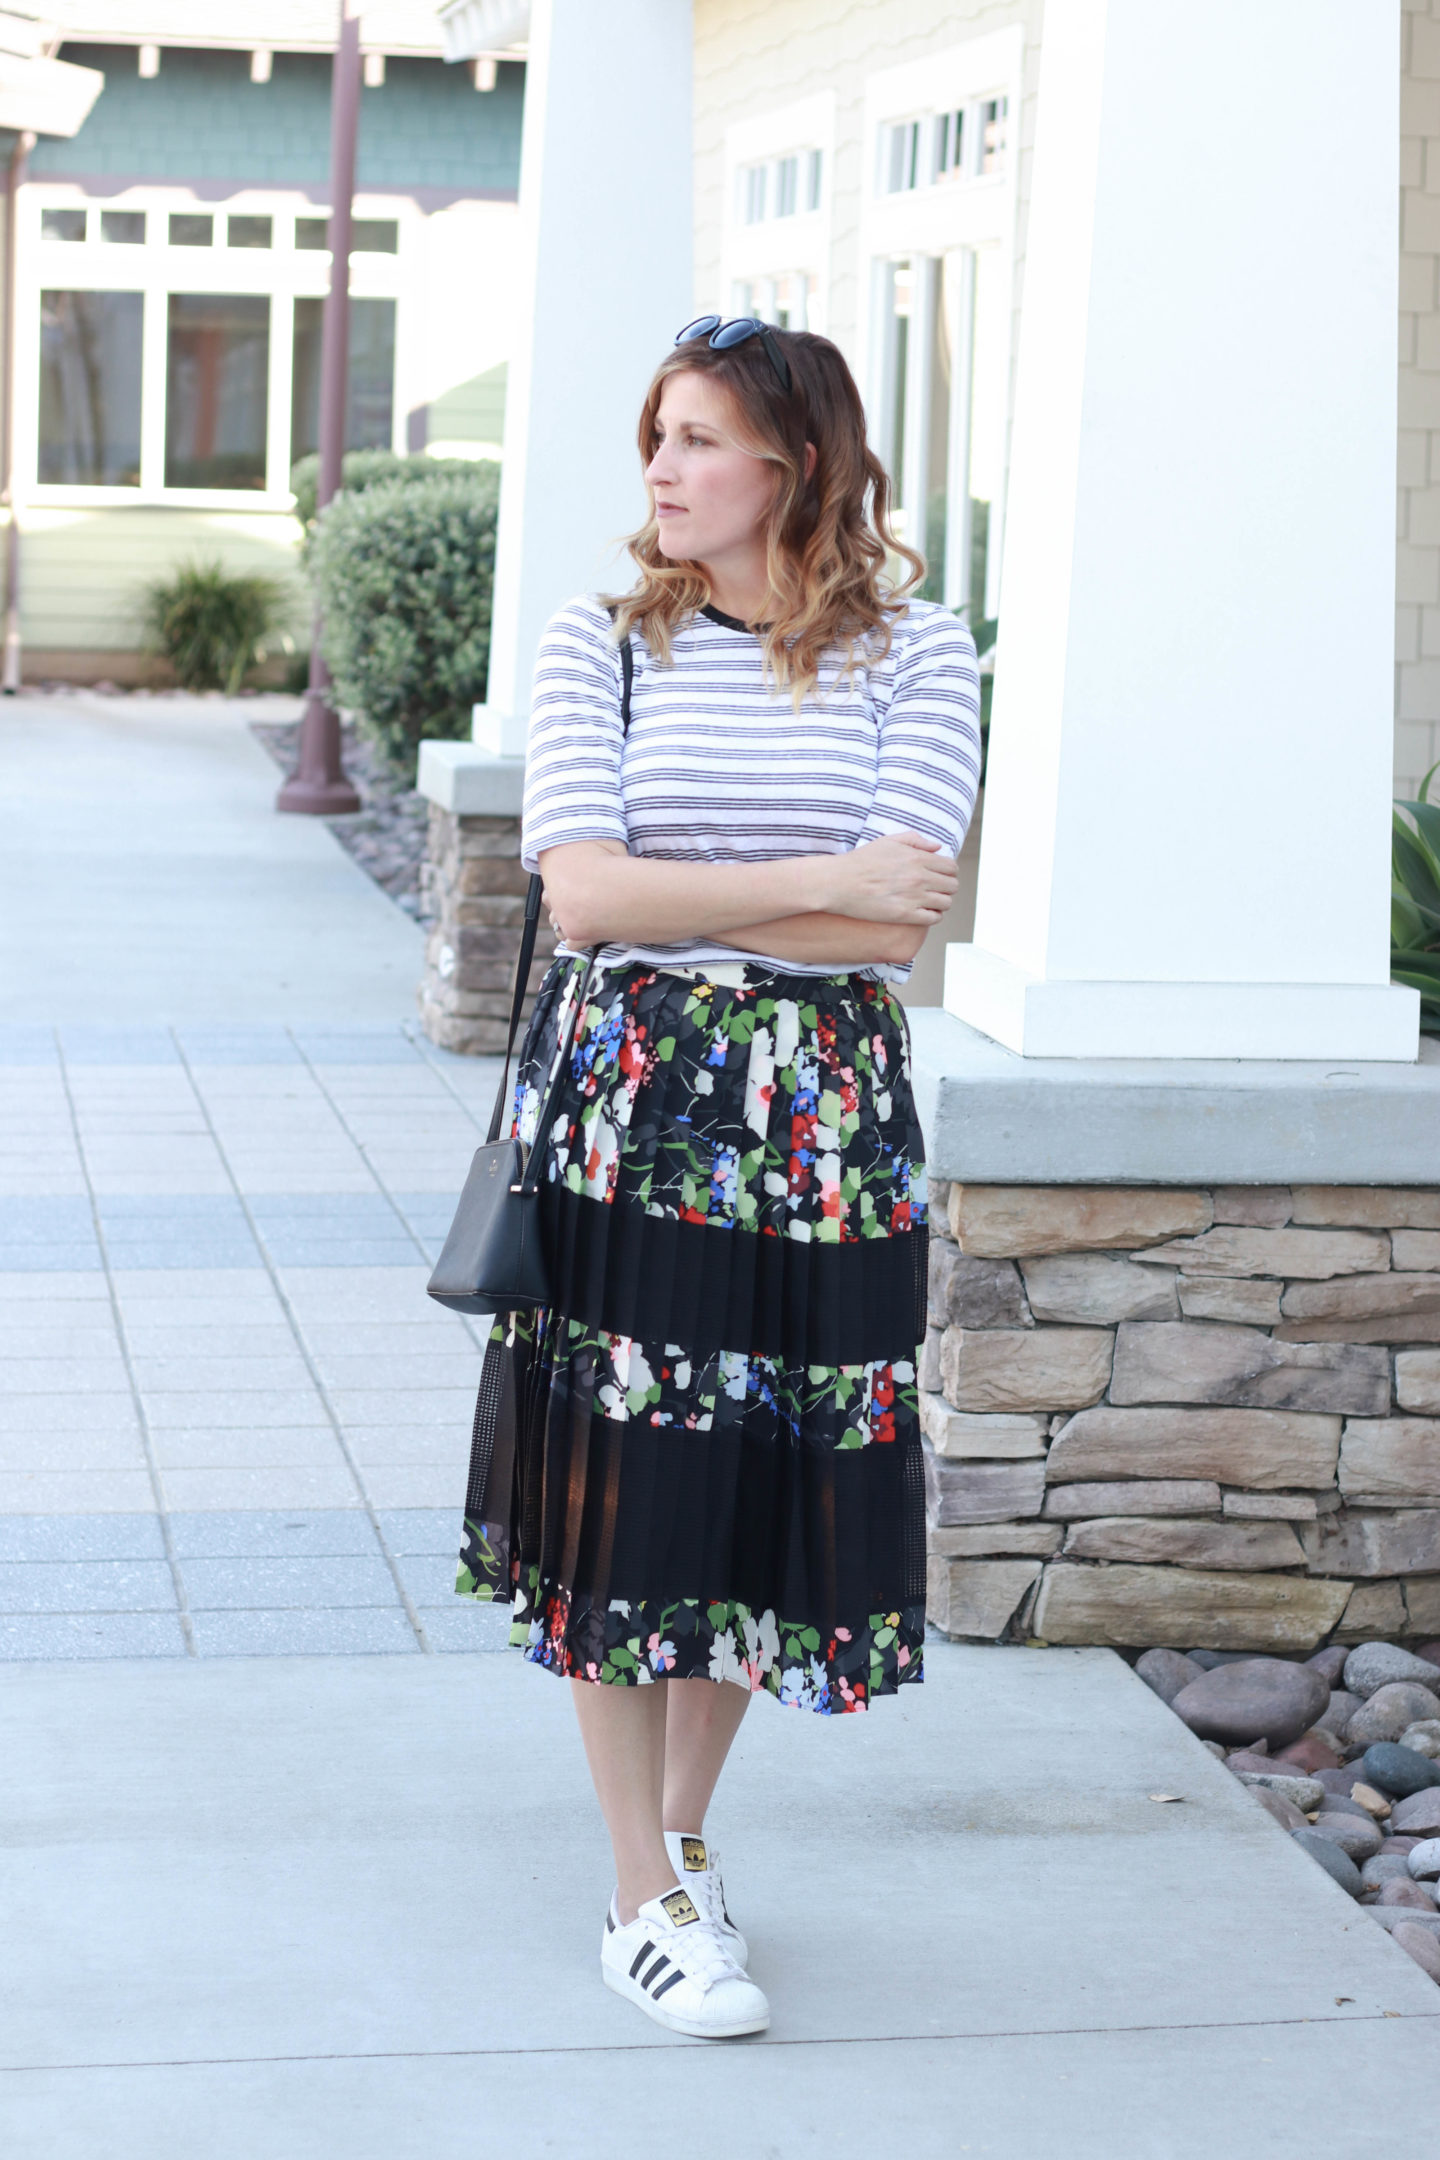 The Weekly Style Edit: Floral Skirt